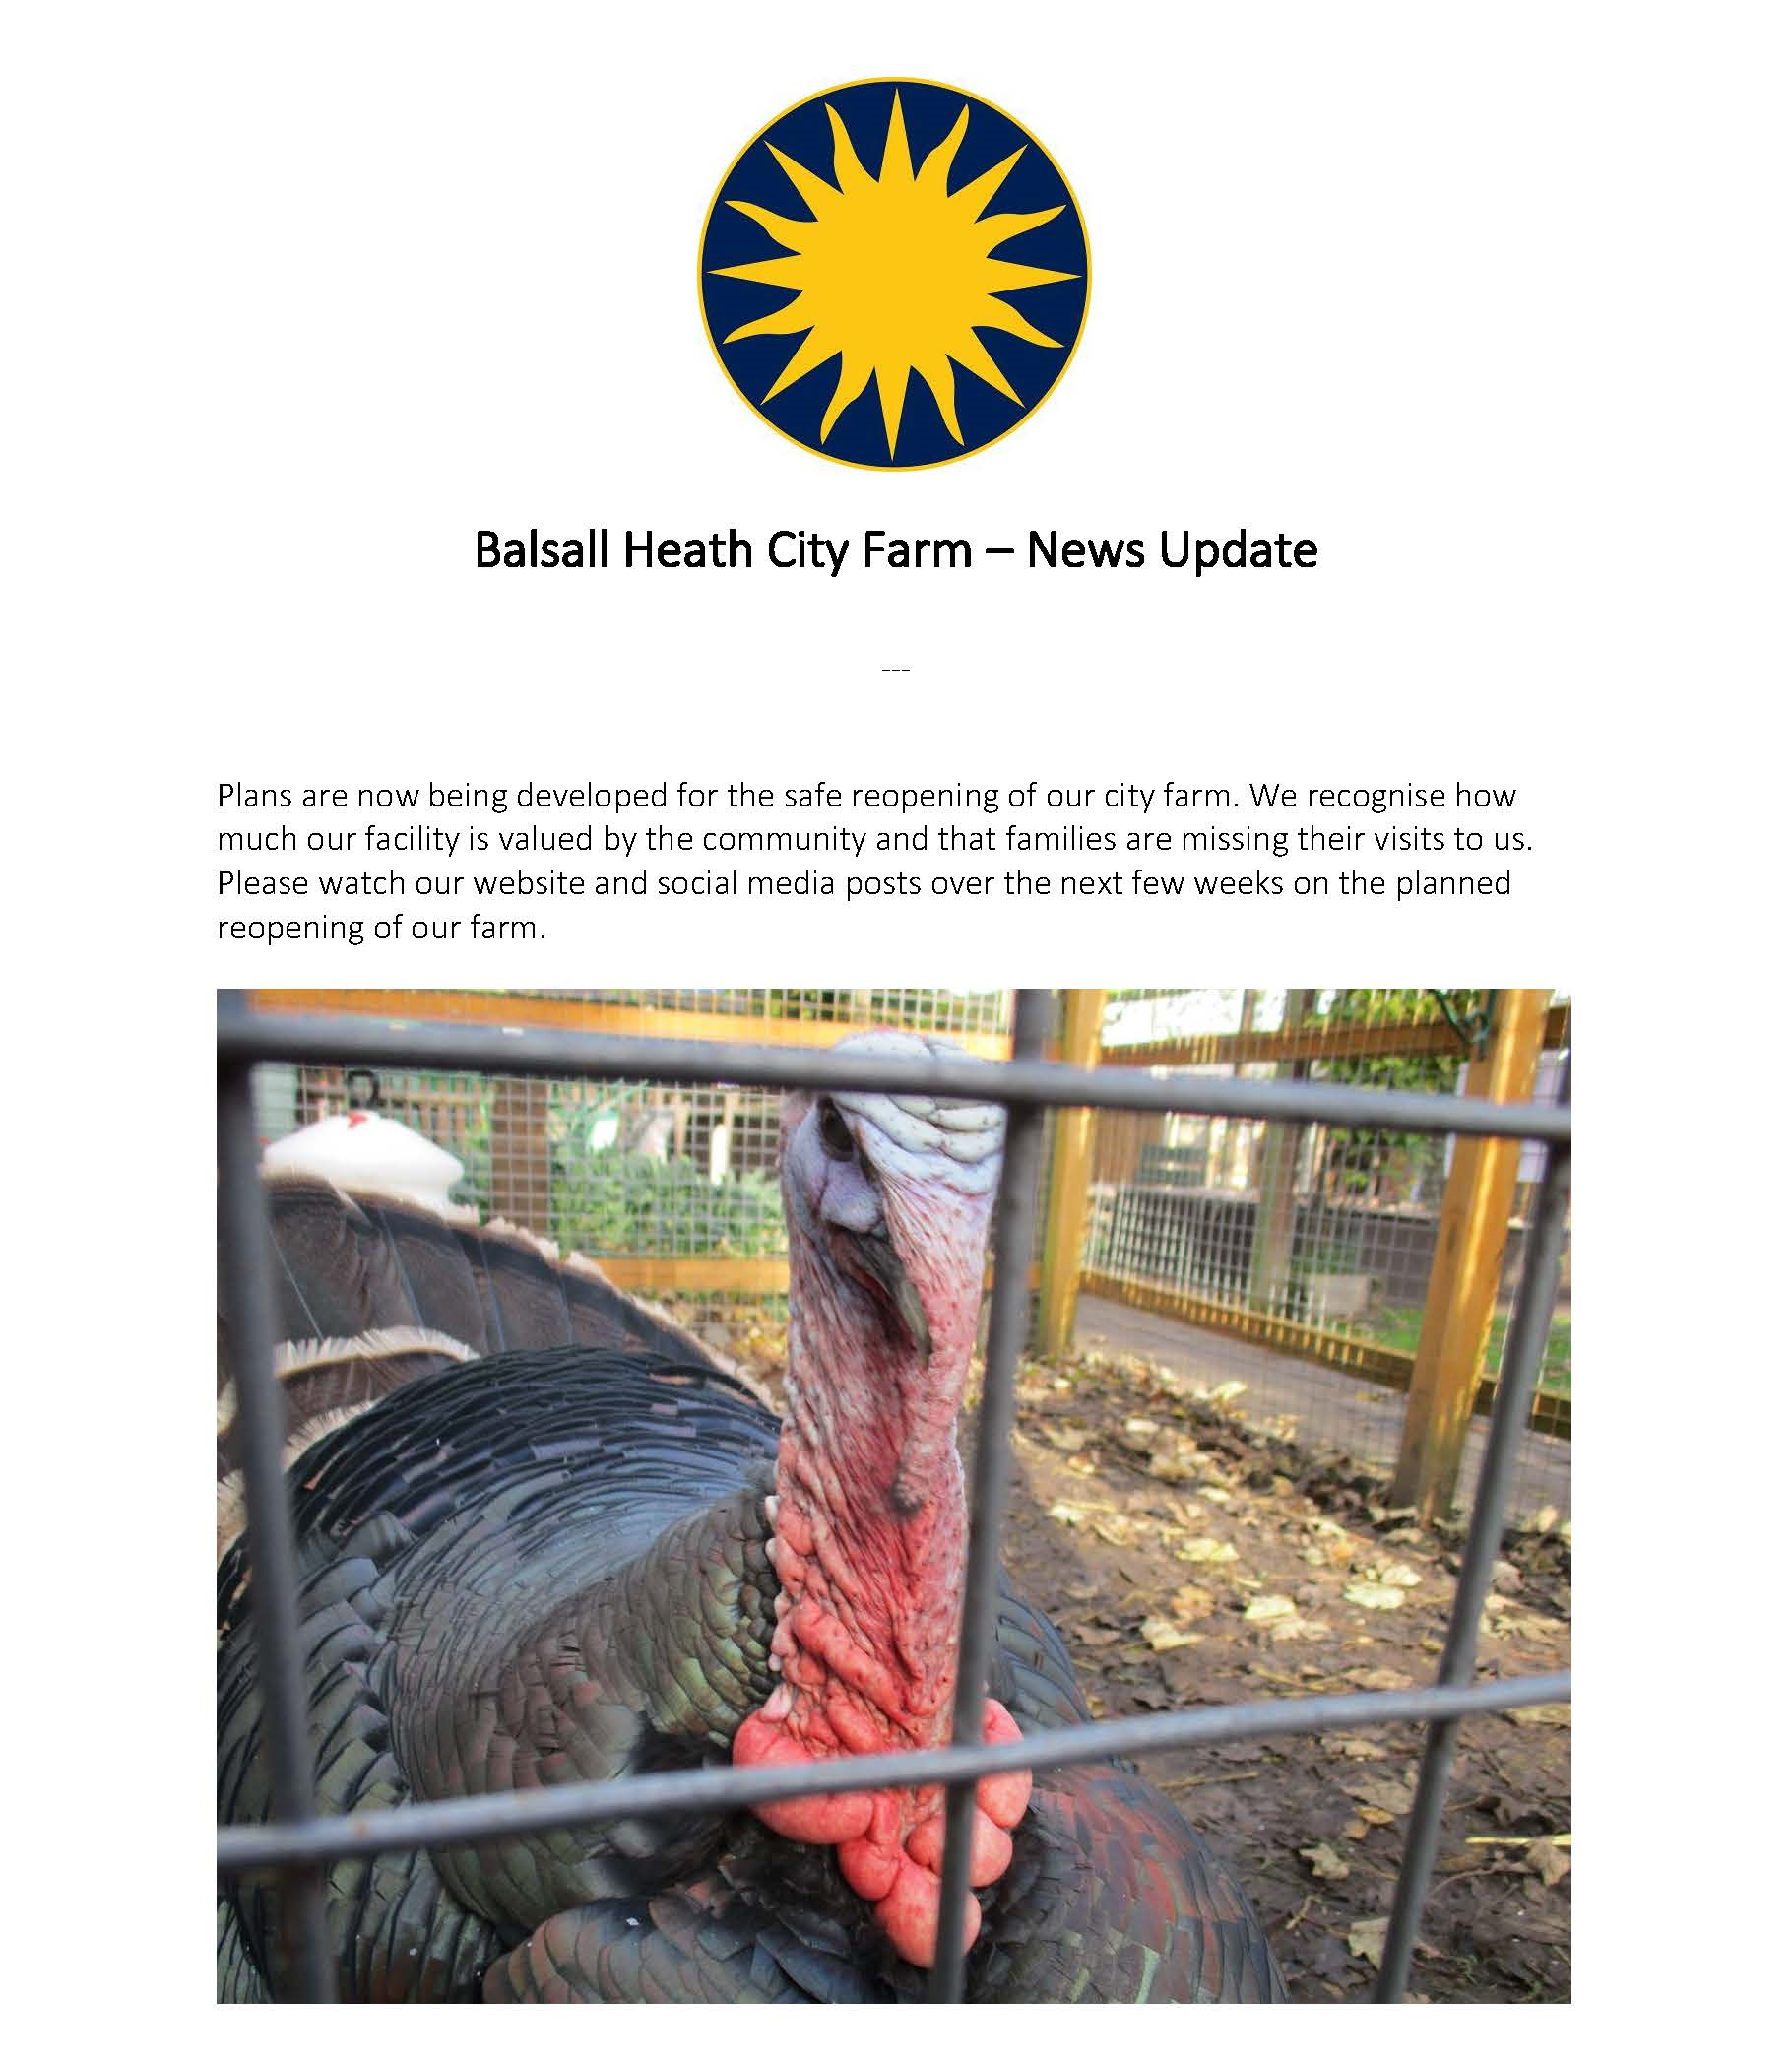 Balsall Heath City Farm Plans in motion to reopen